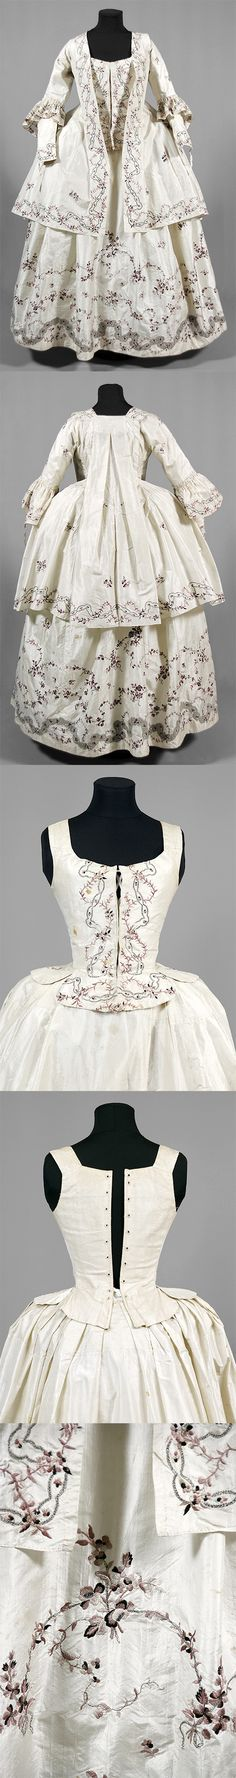 """Gown of white silk, 1770, Sweden, embroidered with darker and lighter purple silk and silver. Consists of seven parts, skirt (width 284 cm), bodice (2 parts), jacket with watteau pleat in the back, 2 loose sleeves and headpiece. Belonged to """"Aunt Ulla"""" Ulrica Christina Cronstedt (1756 - 1841) on Gärdesta. Sörmlands museum"""